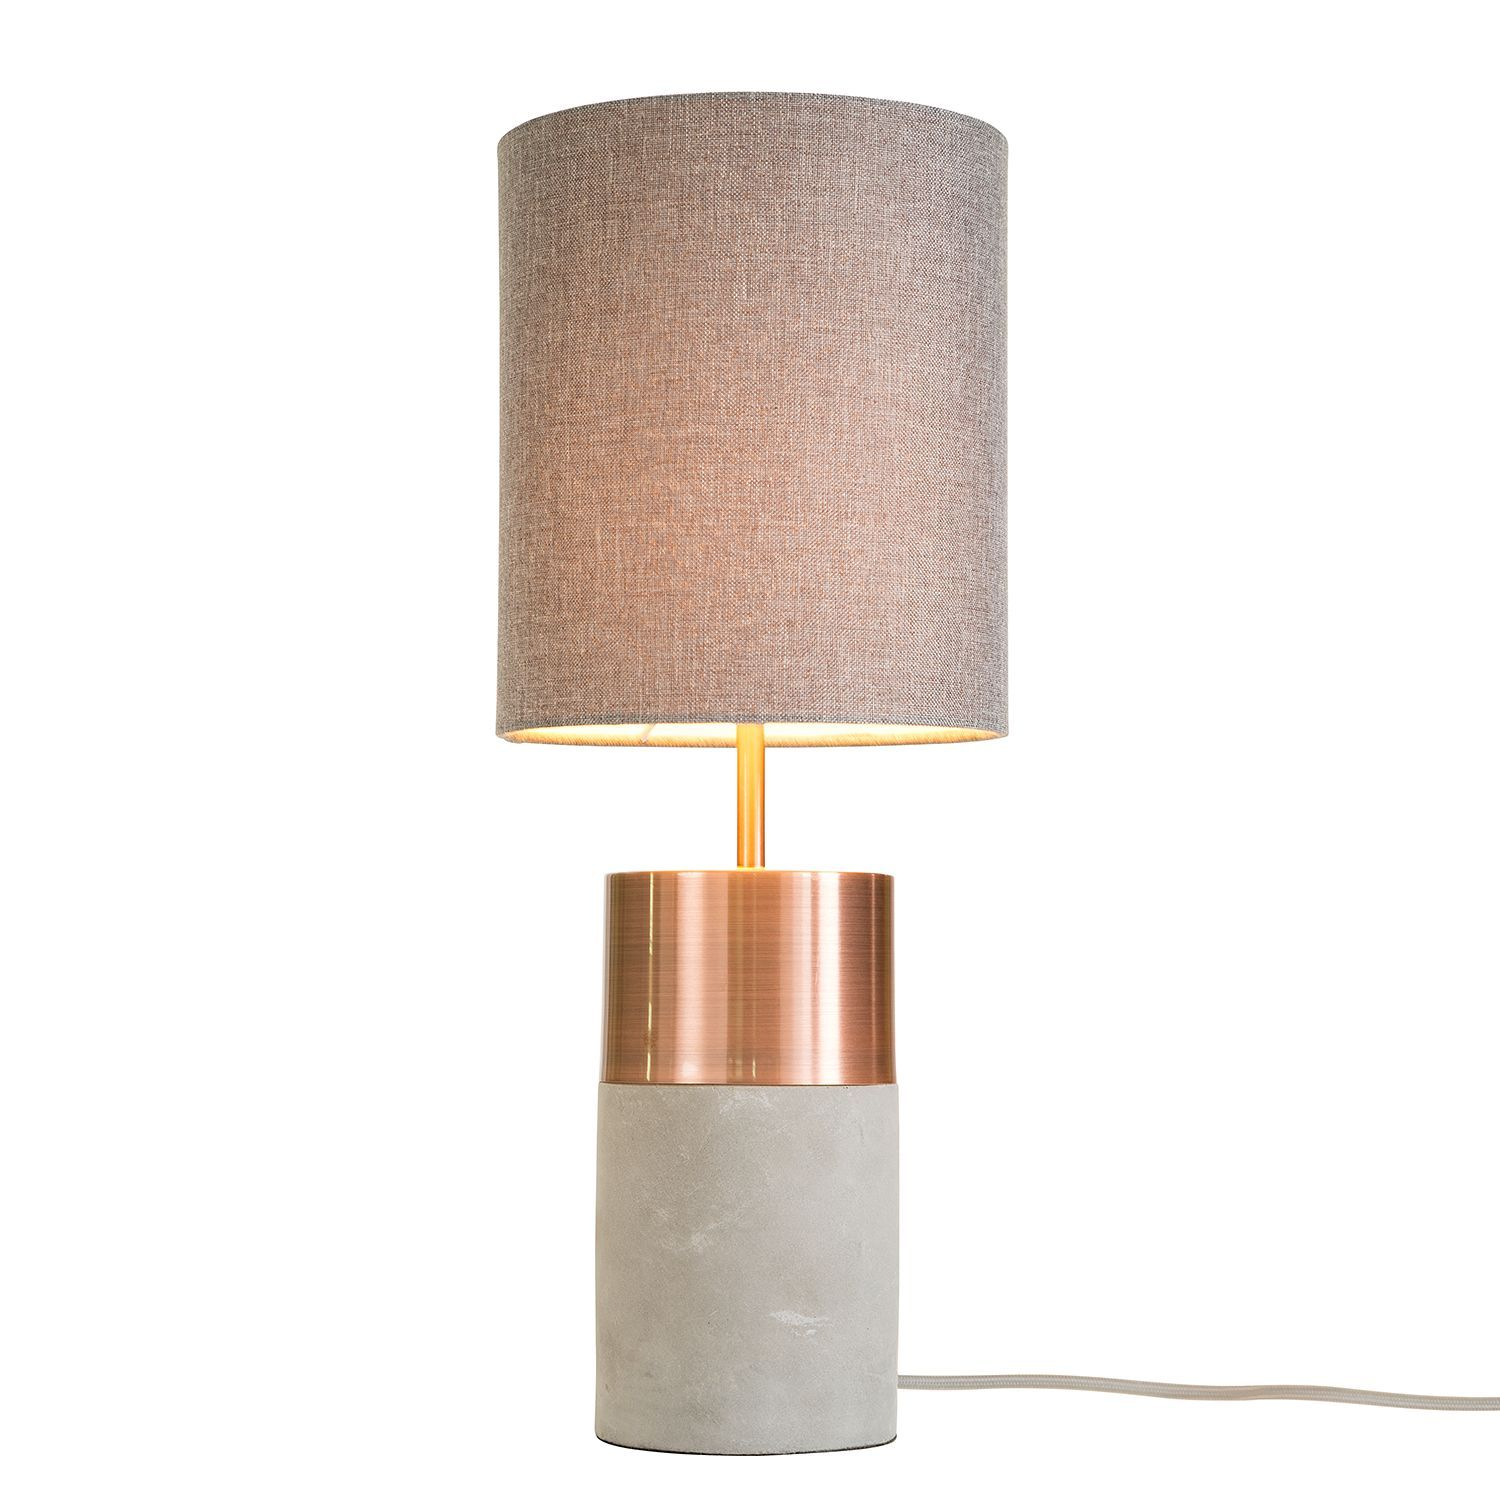 Nachttischleuchte Kugel Touch Pin By Ladendirekt On Tischleuchten Table Lamp Lamp Light Table